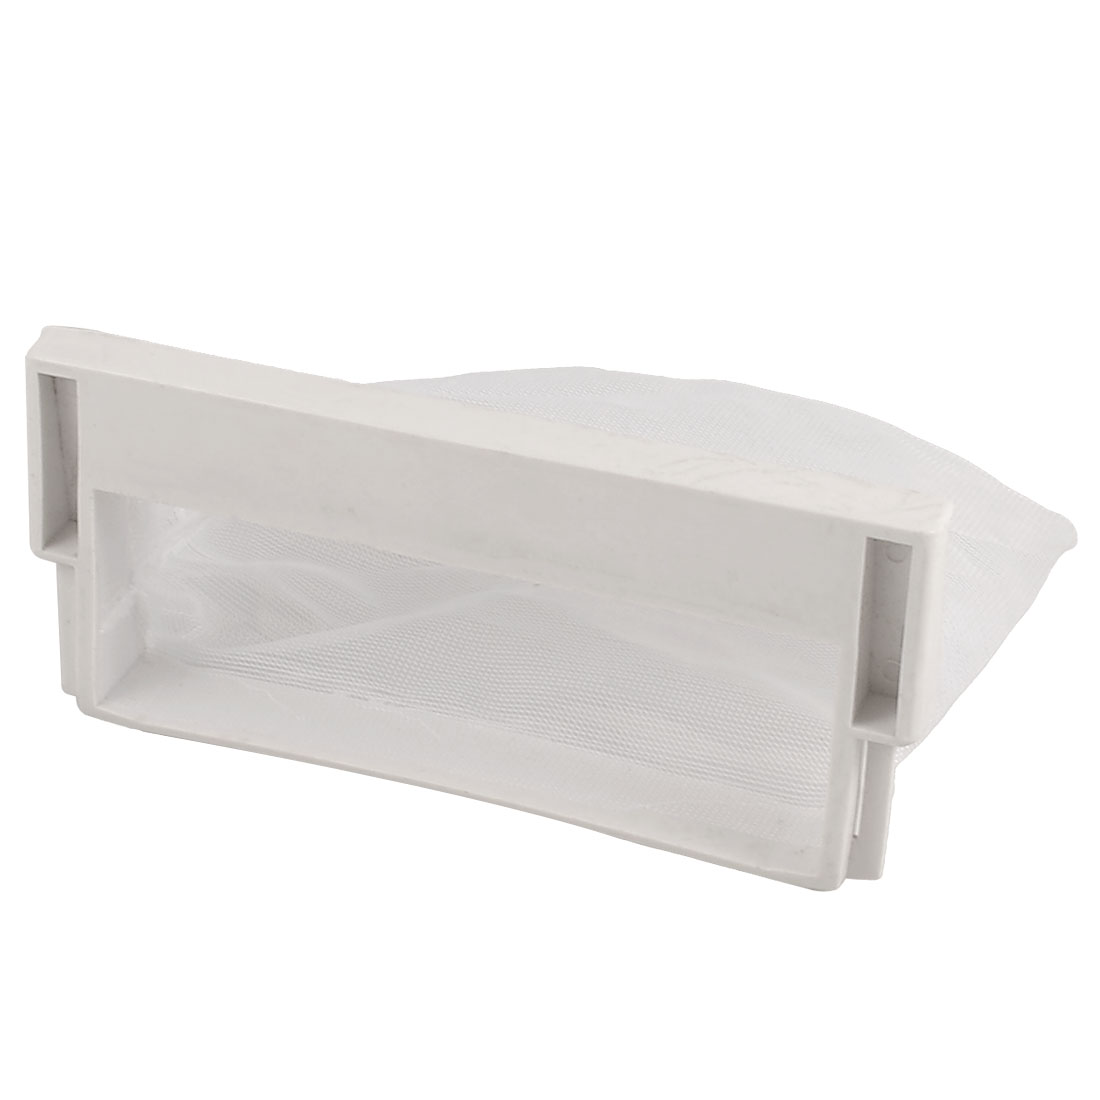 Washing Machine White Plastic Nylon Filter 13cm x 8.5cm Meshy Bag